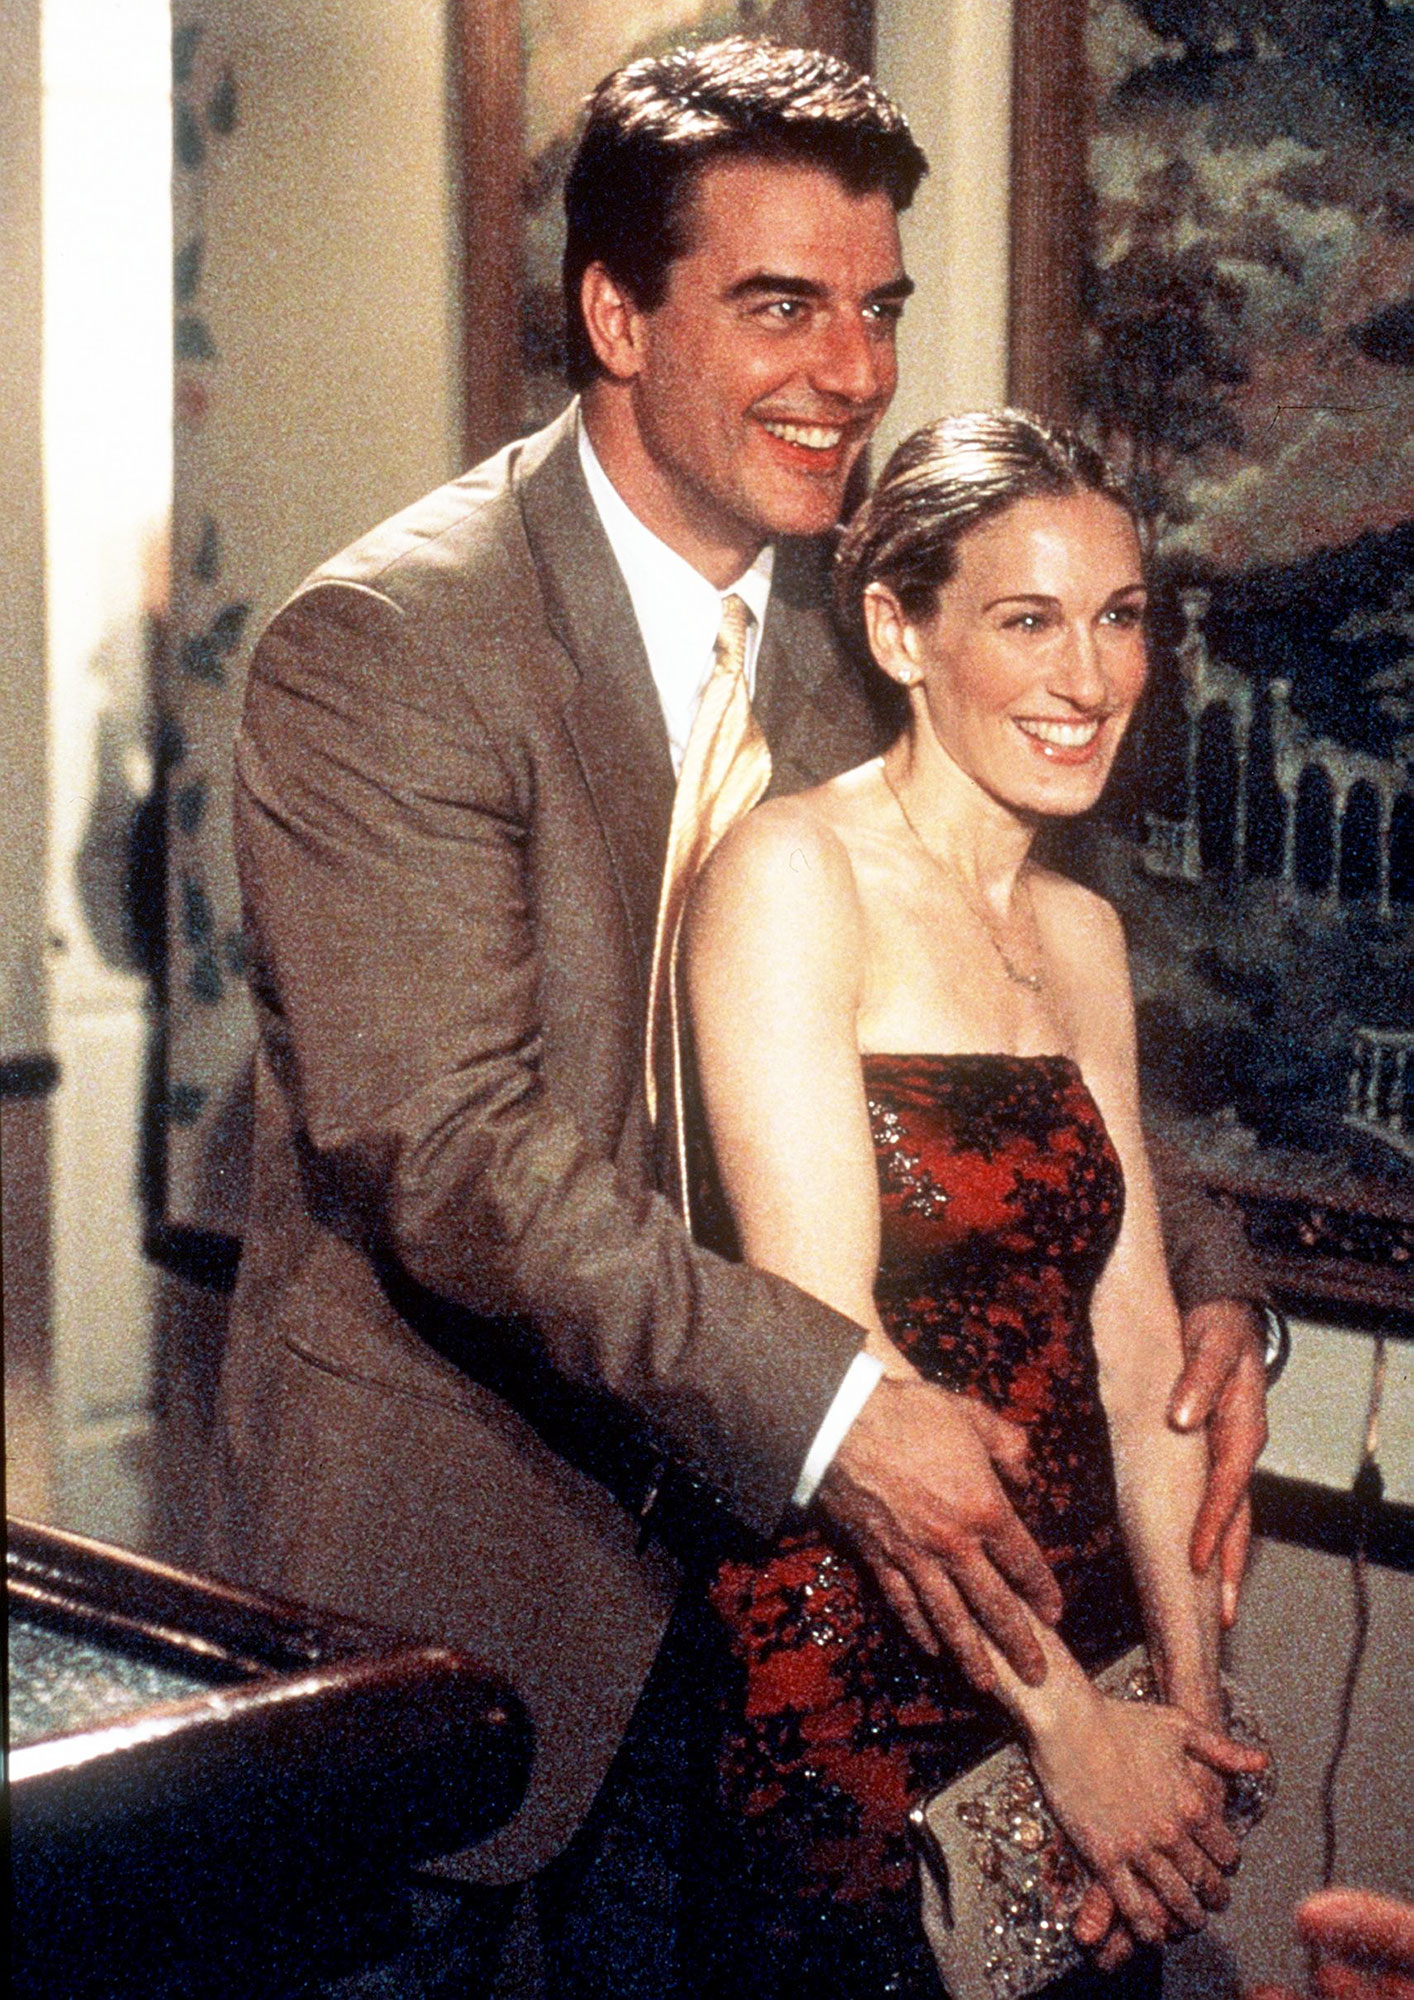 Best TV Couples Sex and the City Chris Noth Sarah Jessica Parker - Show: Sex and the City Actors: Christopher Noth and Sarah Jessica Parker Network: HBO Seasons: 6